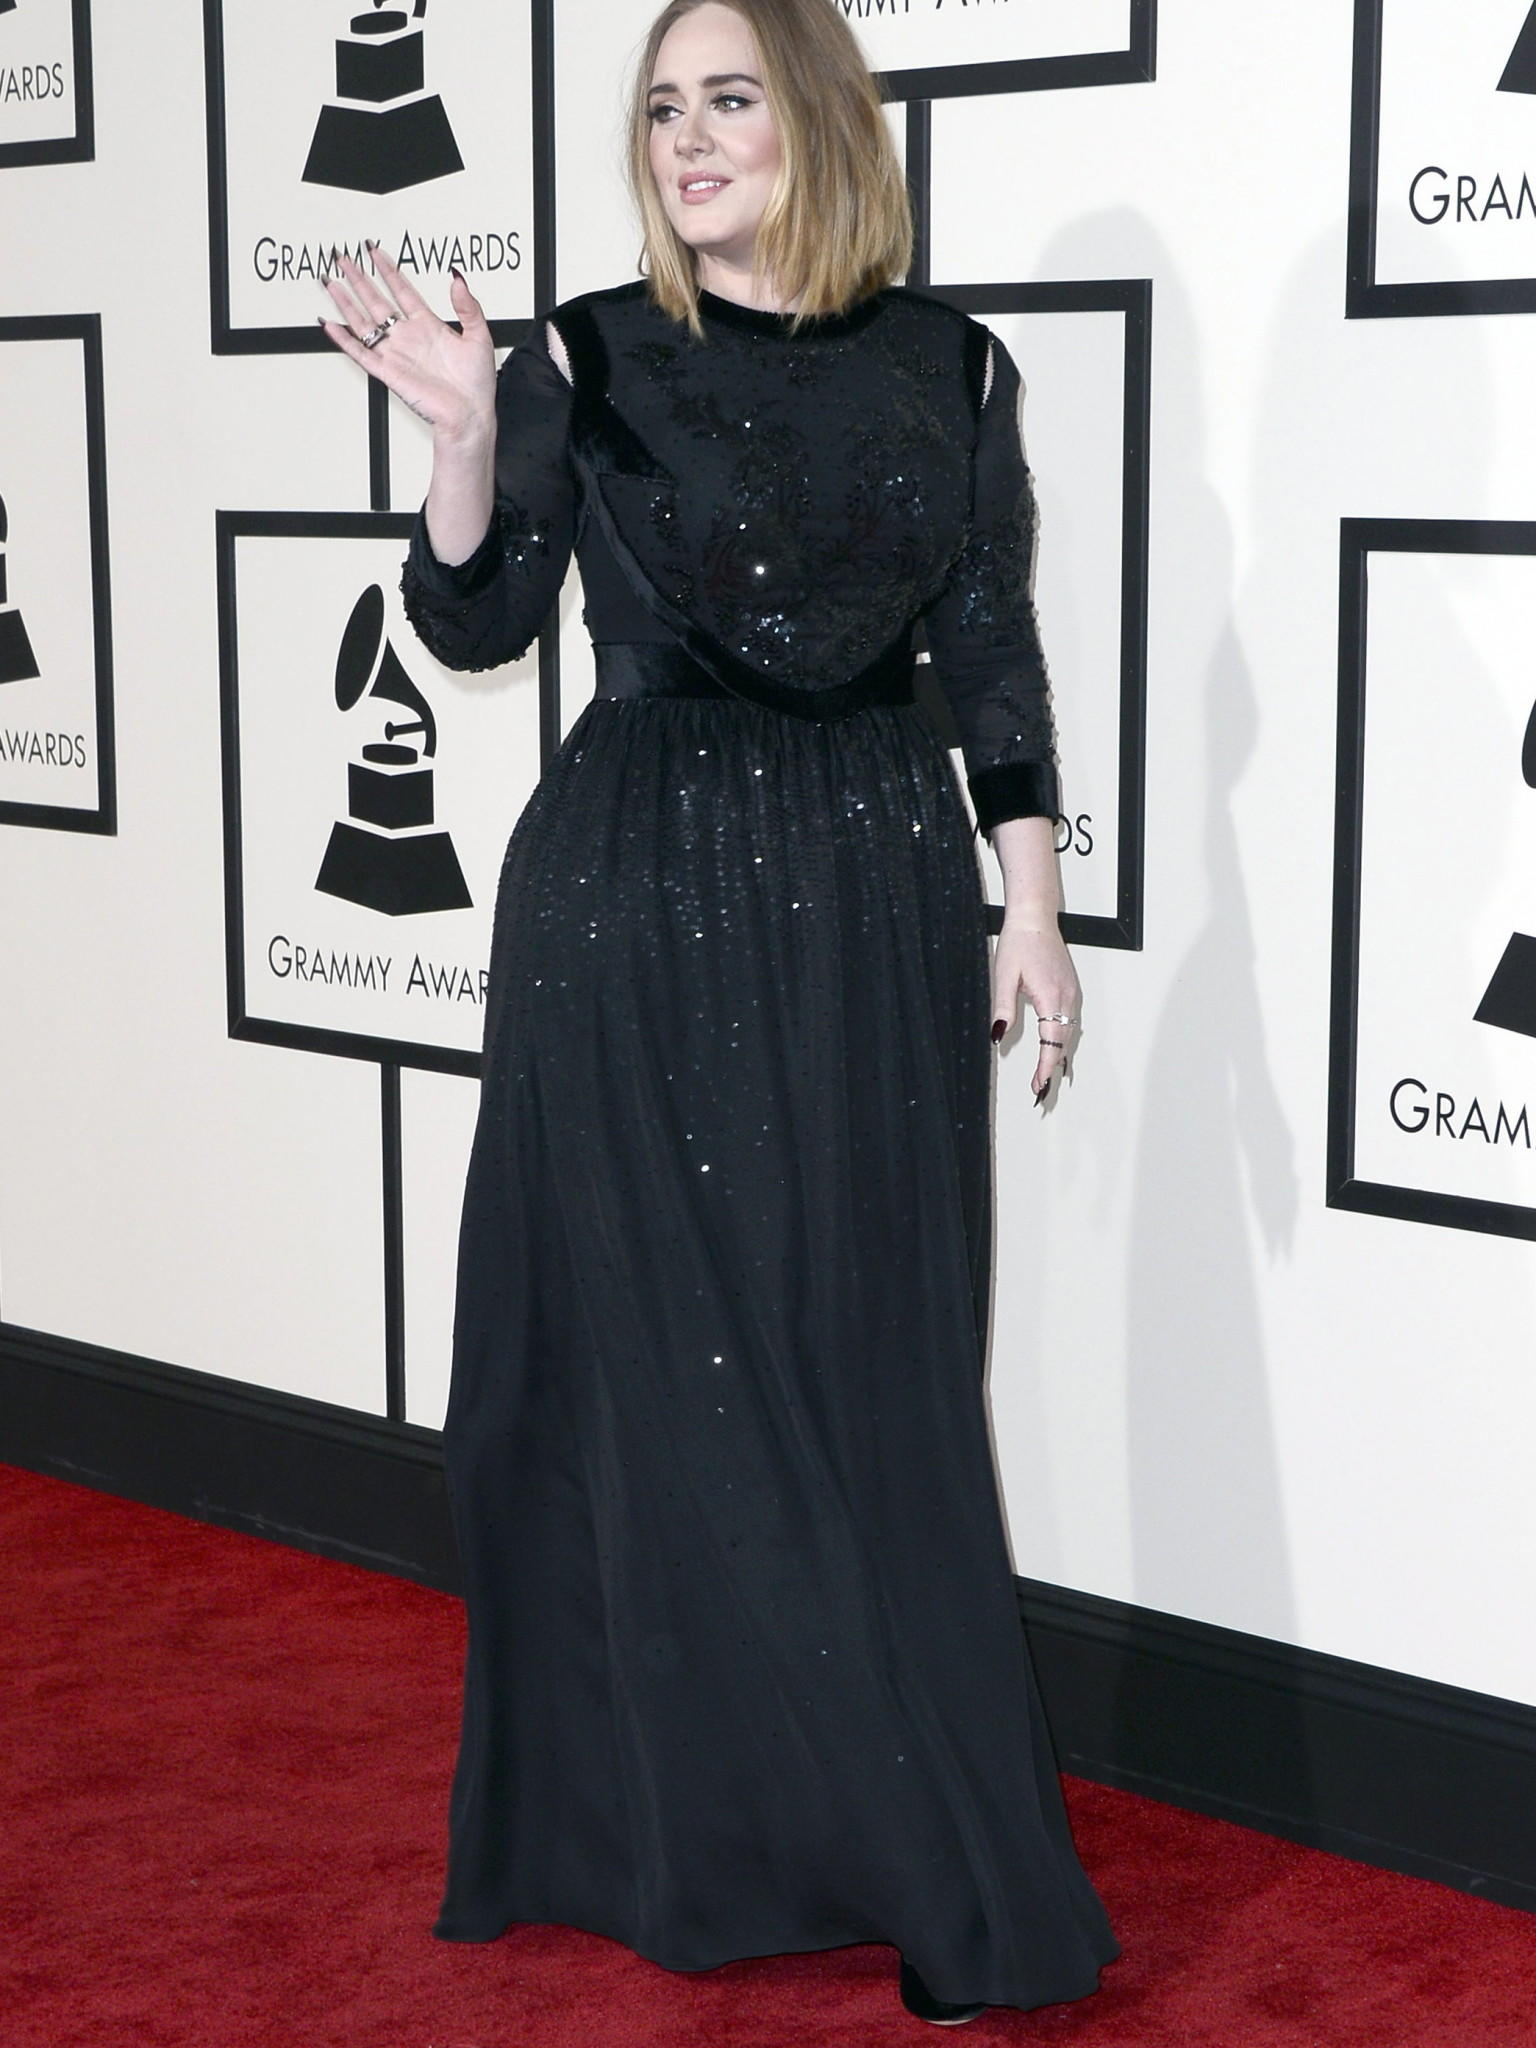 Grammys Looks 2016 Galerie roter Teppich